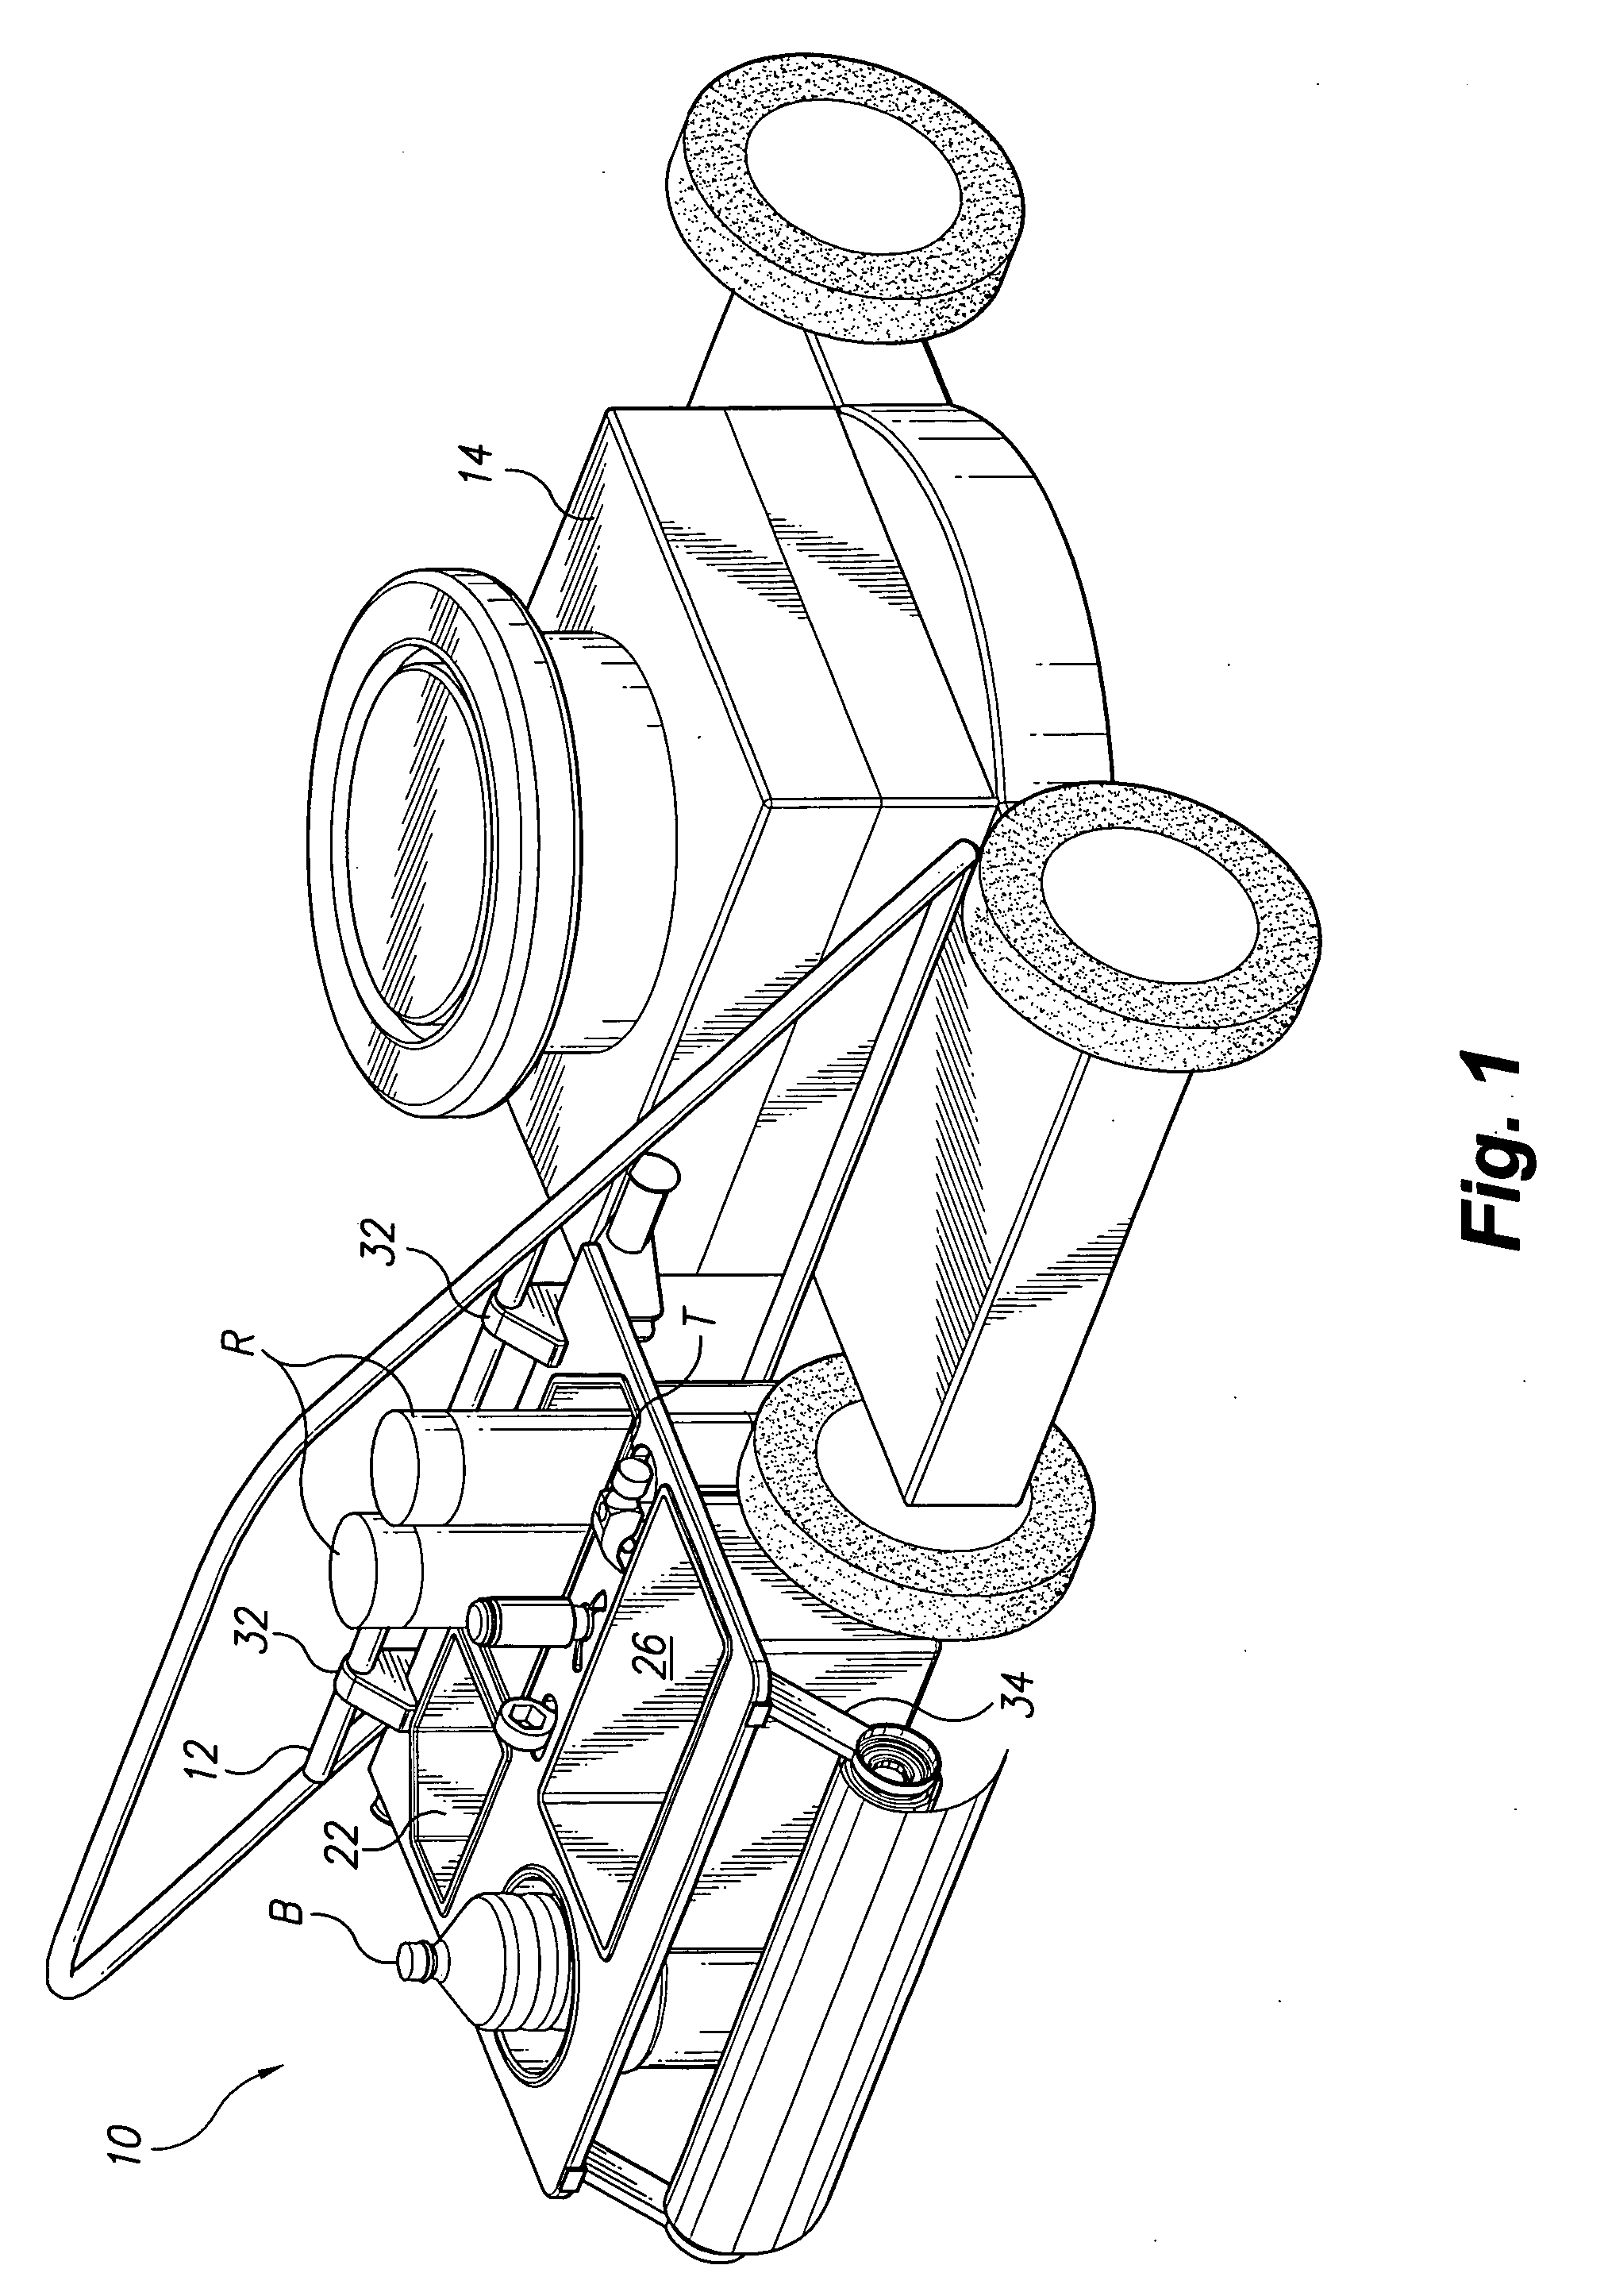 Patent Us20090266856 Lawn Mower Caddy Google Patents 1990 Jeep Wrangler Fuel System Wiring Diagram Drawing